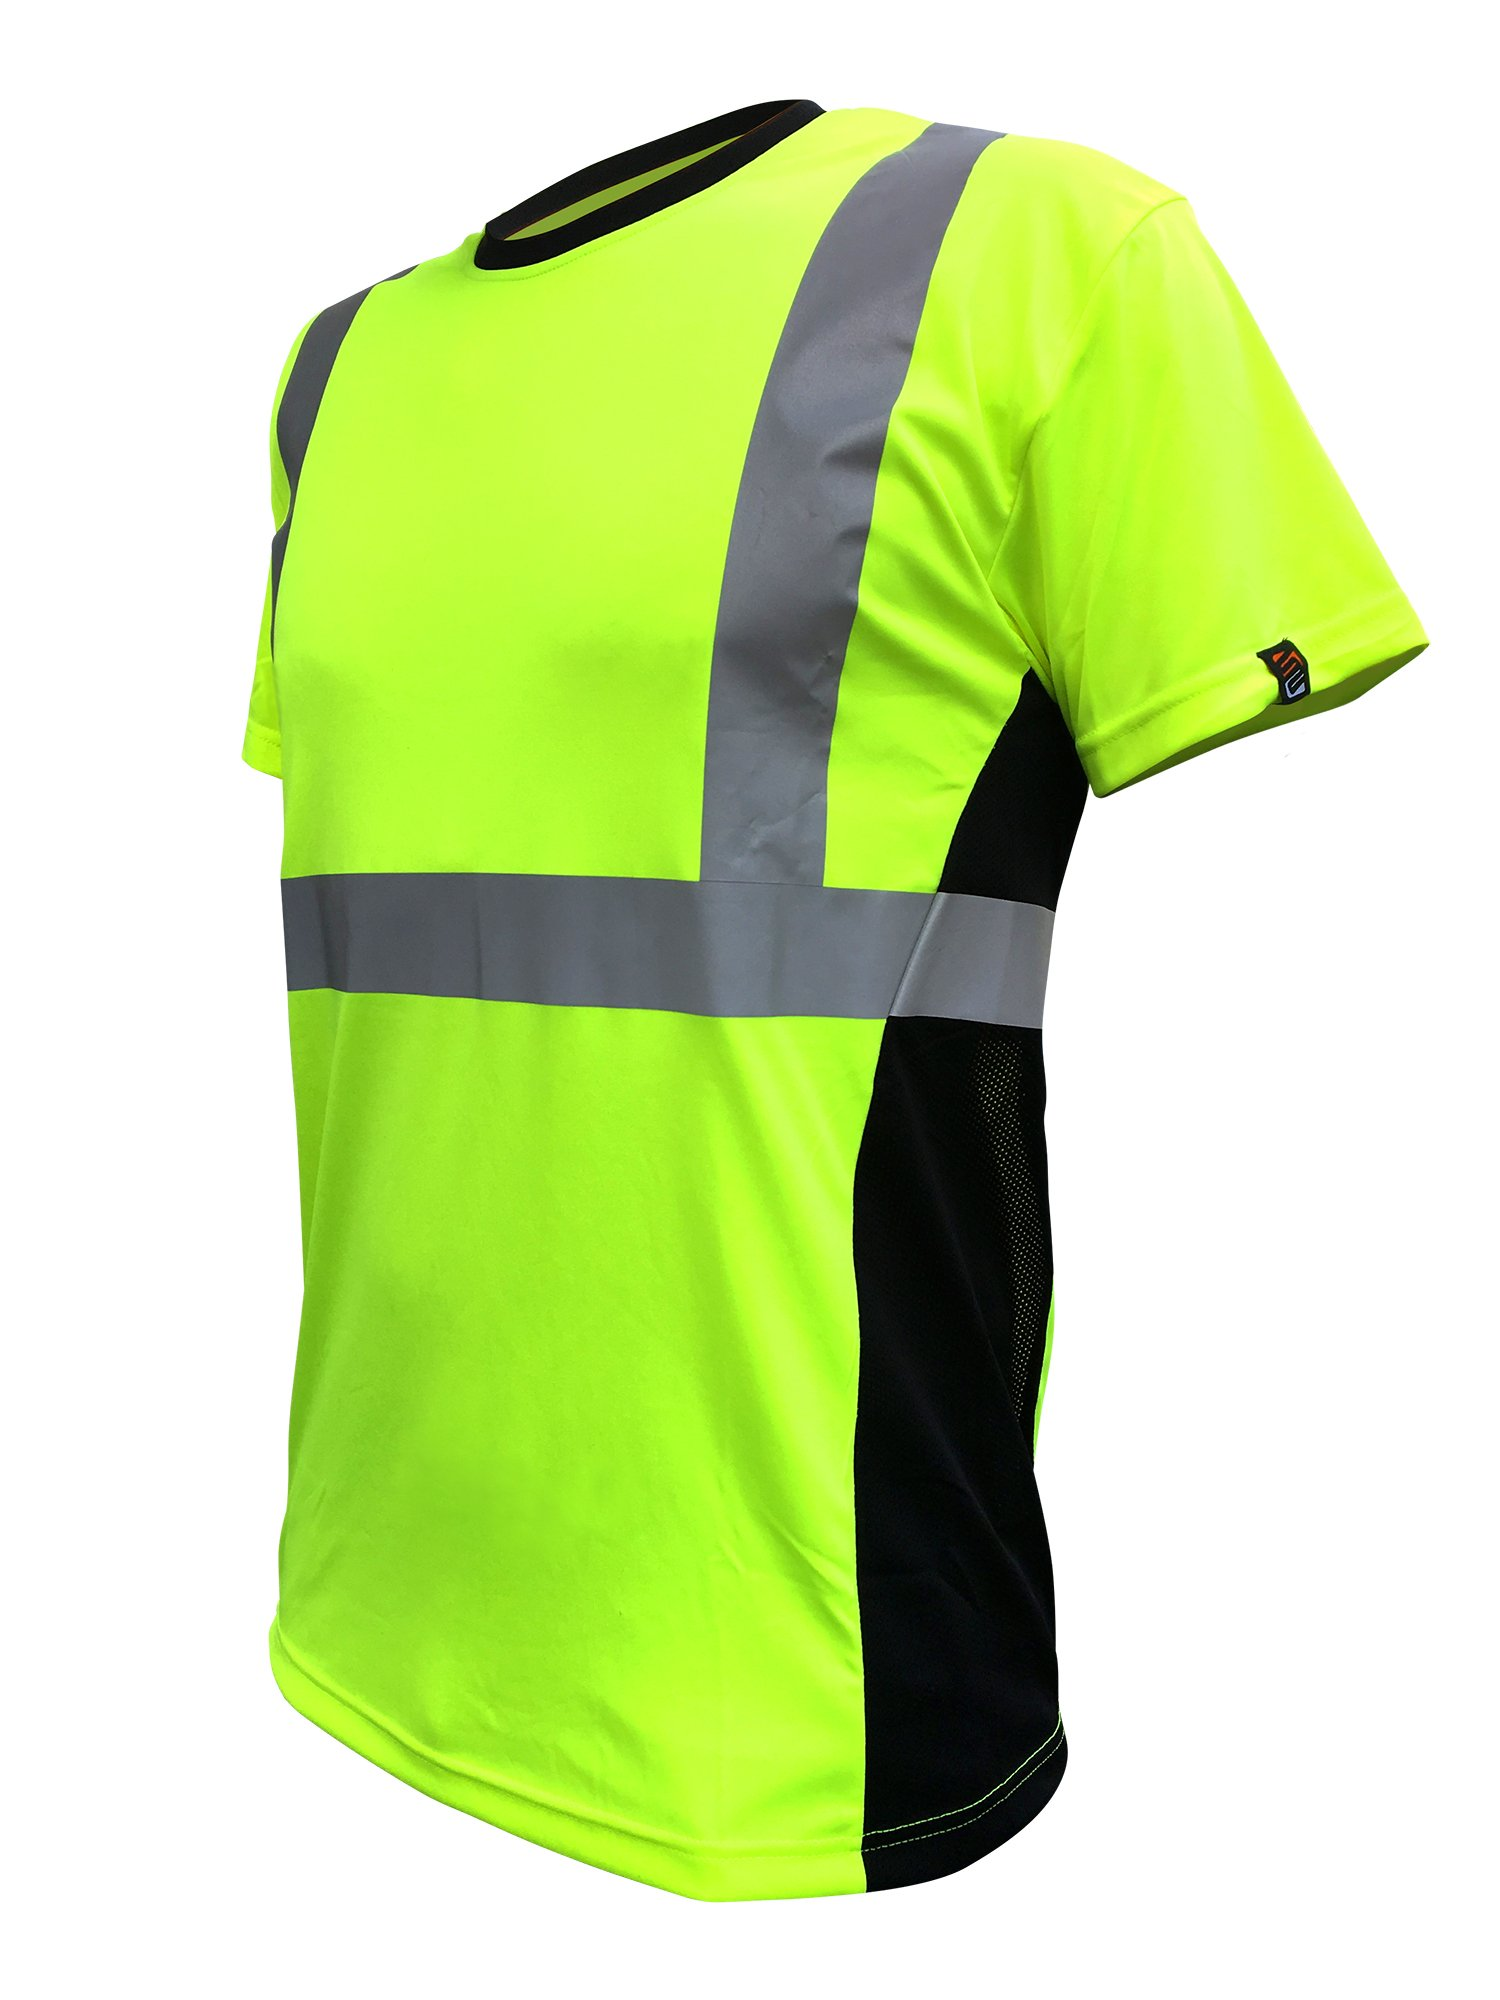 SafetyShirtz SS360 ANSI Class 2 Safety Tee Yellow (Safety Green) w/ Vented Sides 3XL